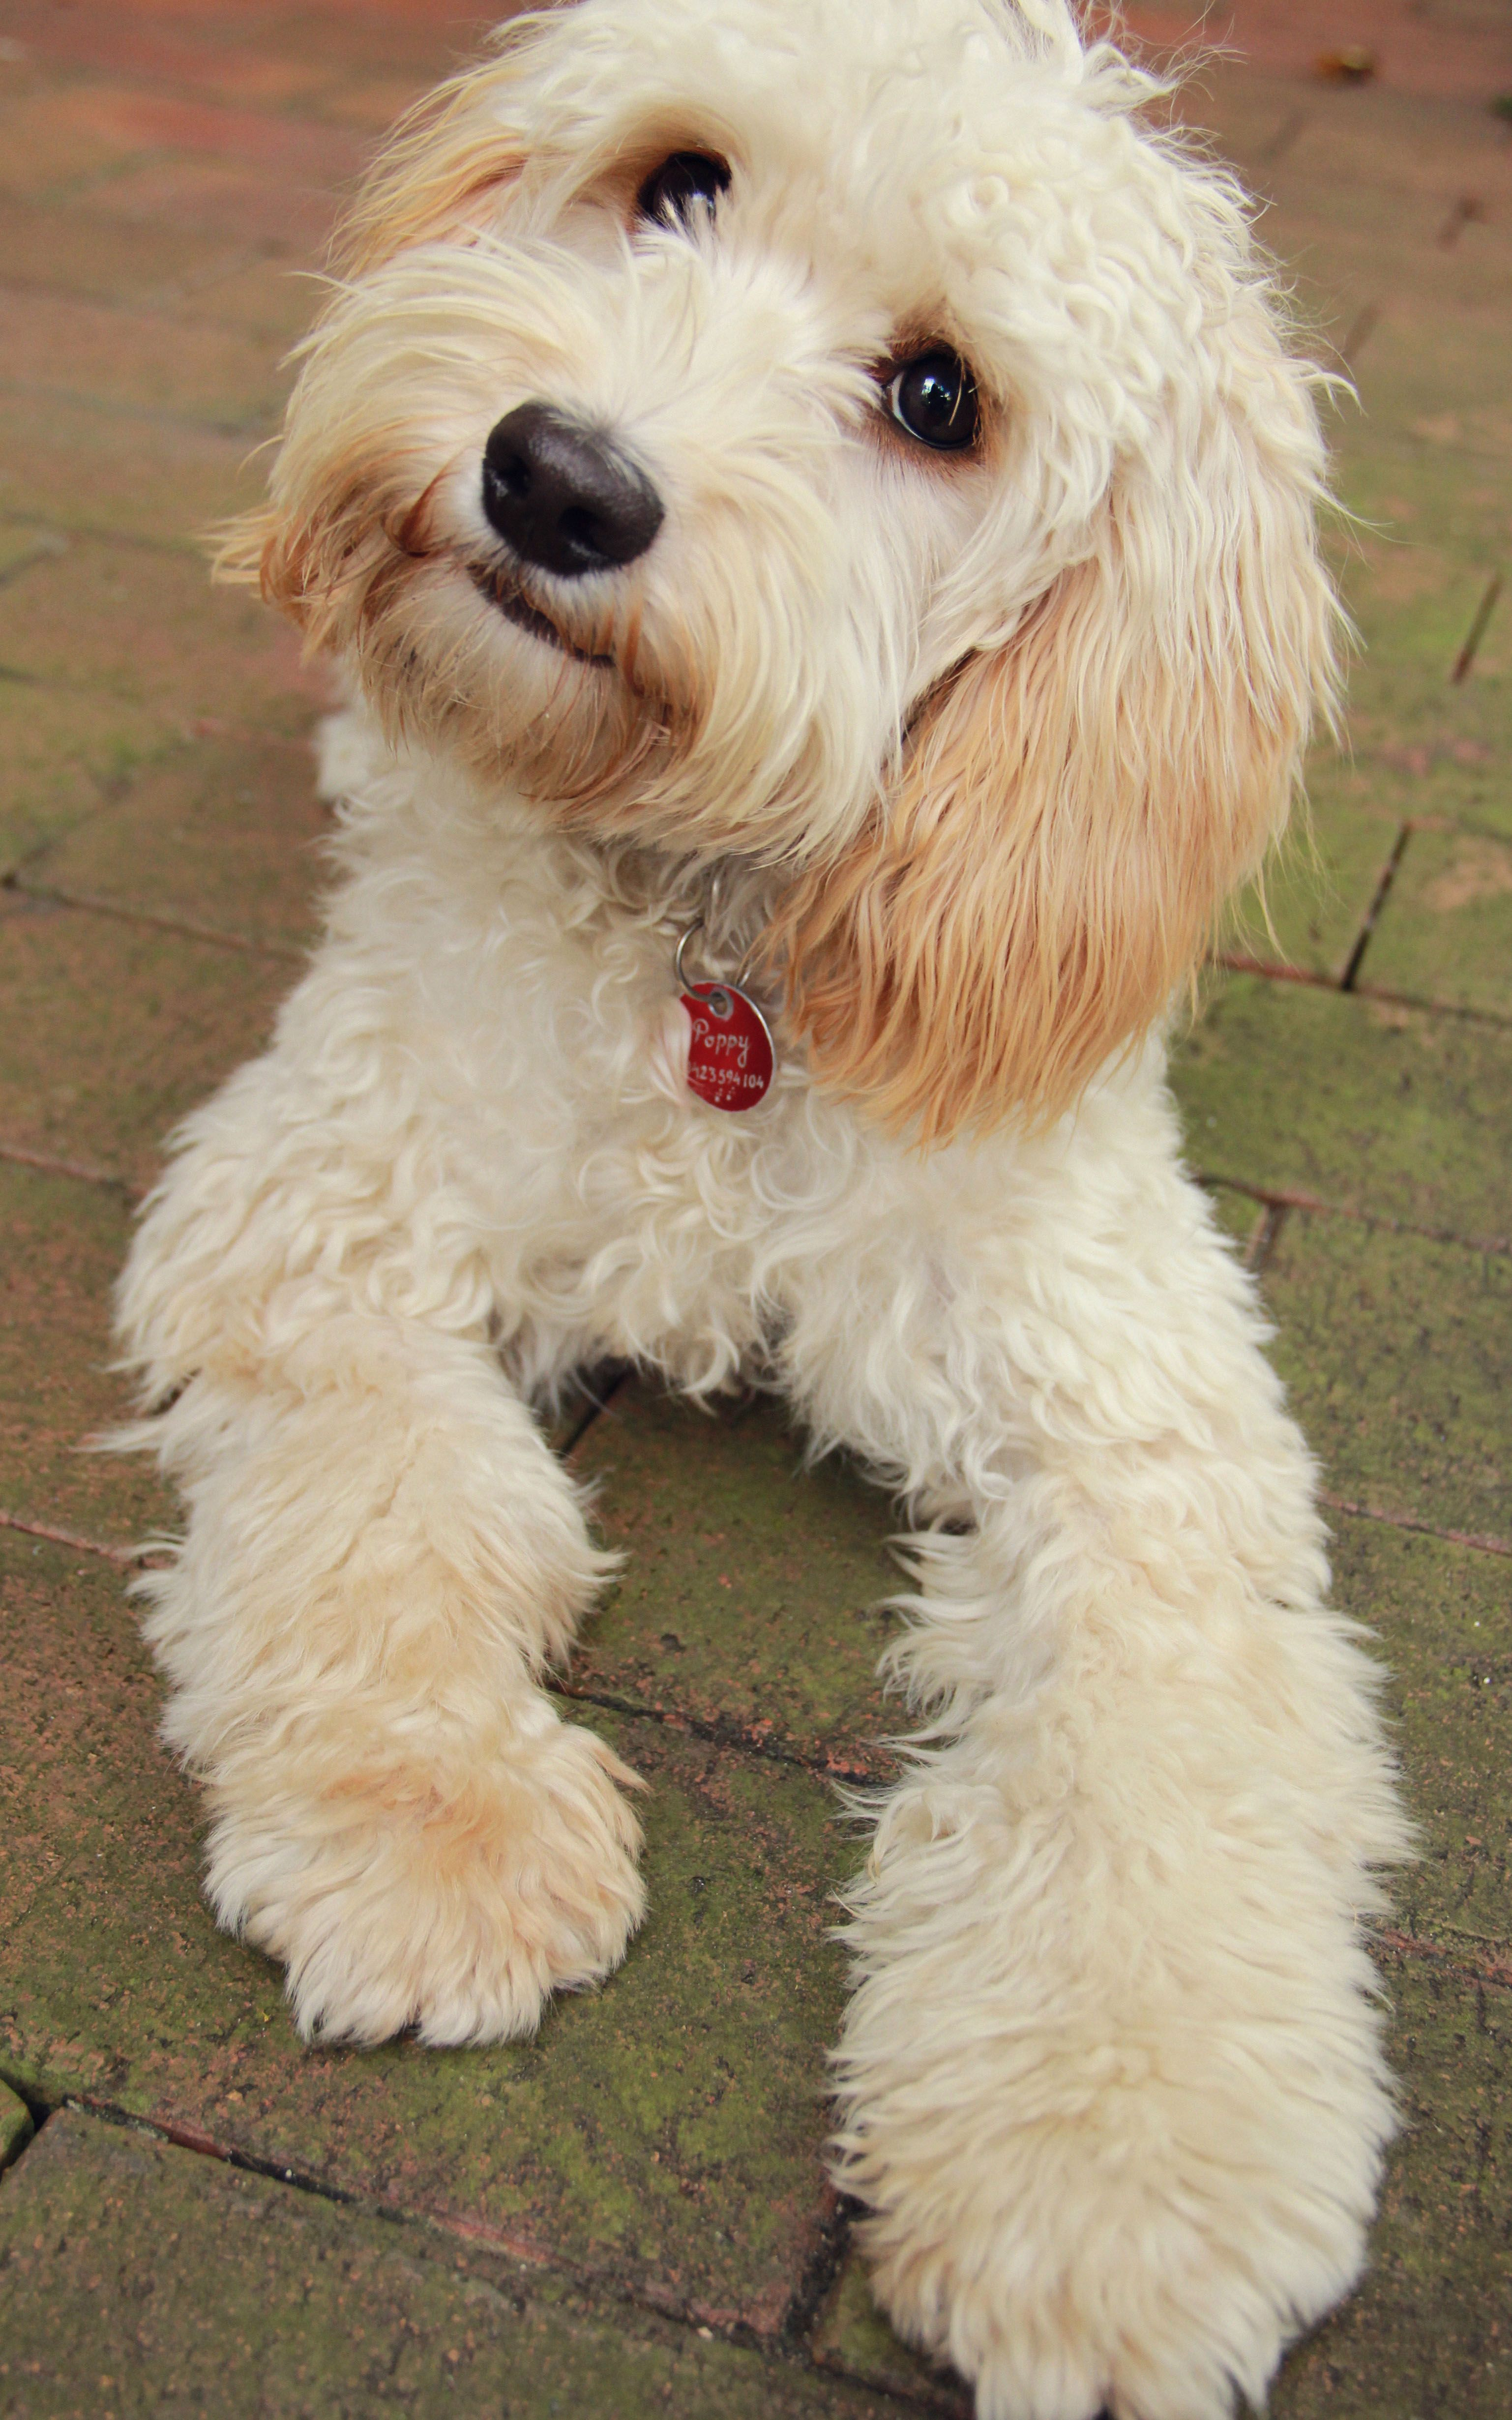 Cavoodle Happy Dogs Poodle Mix Breeds Puppies